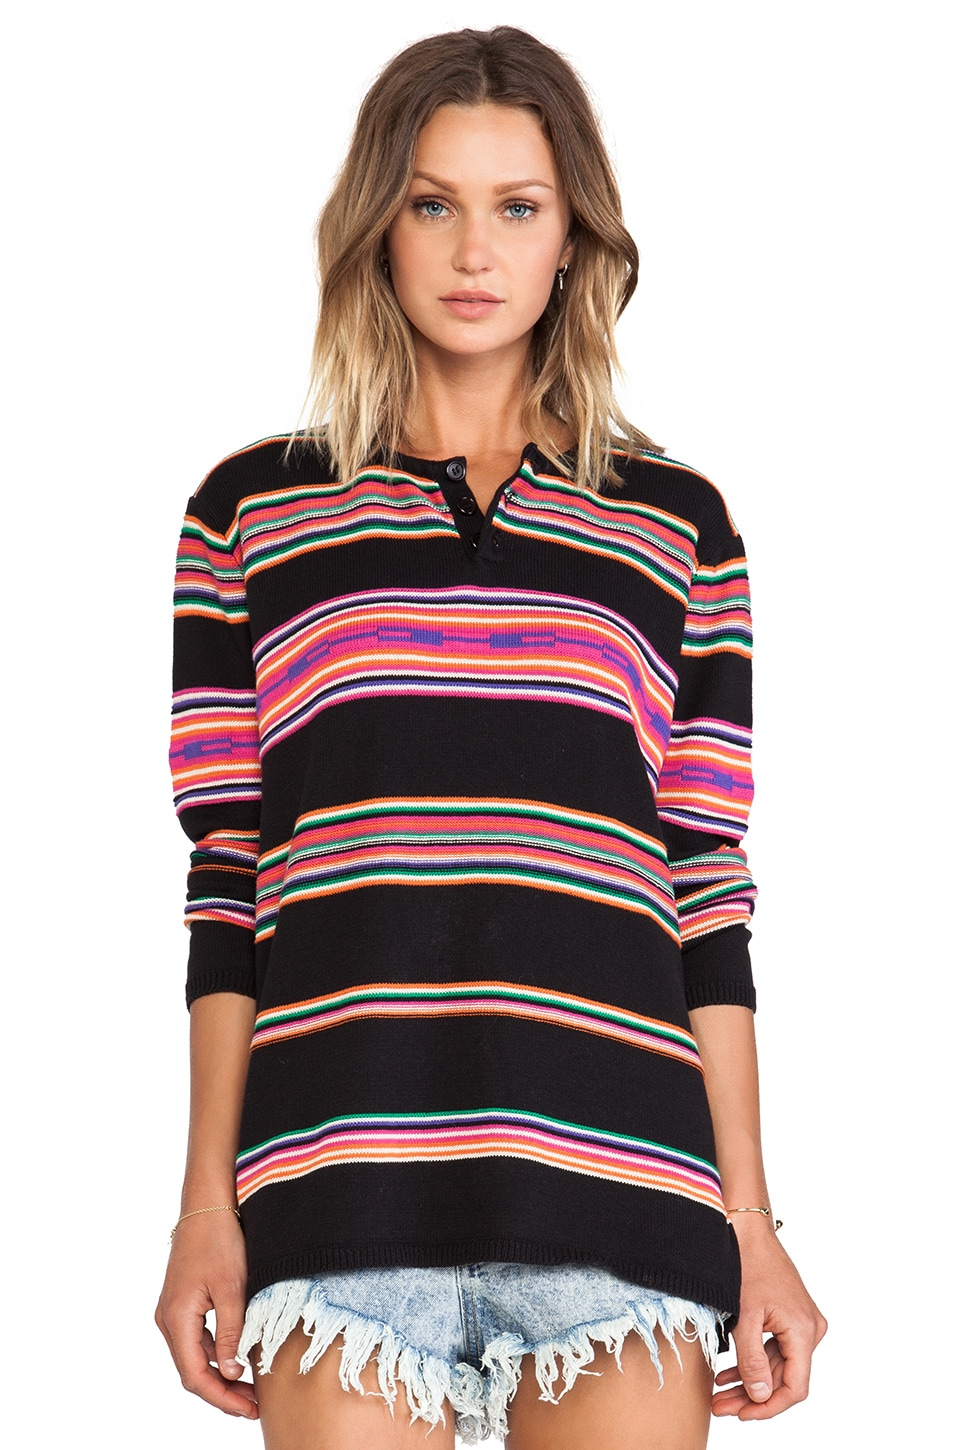 UNIF Desert Sweater in Black Multi